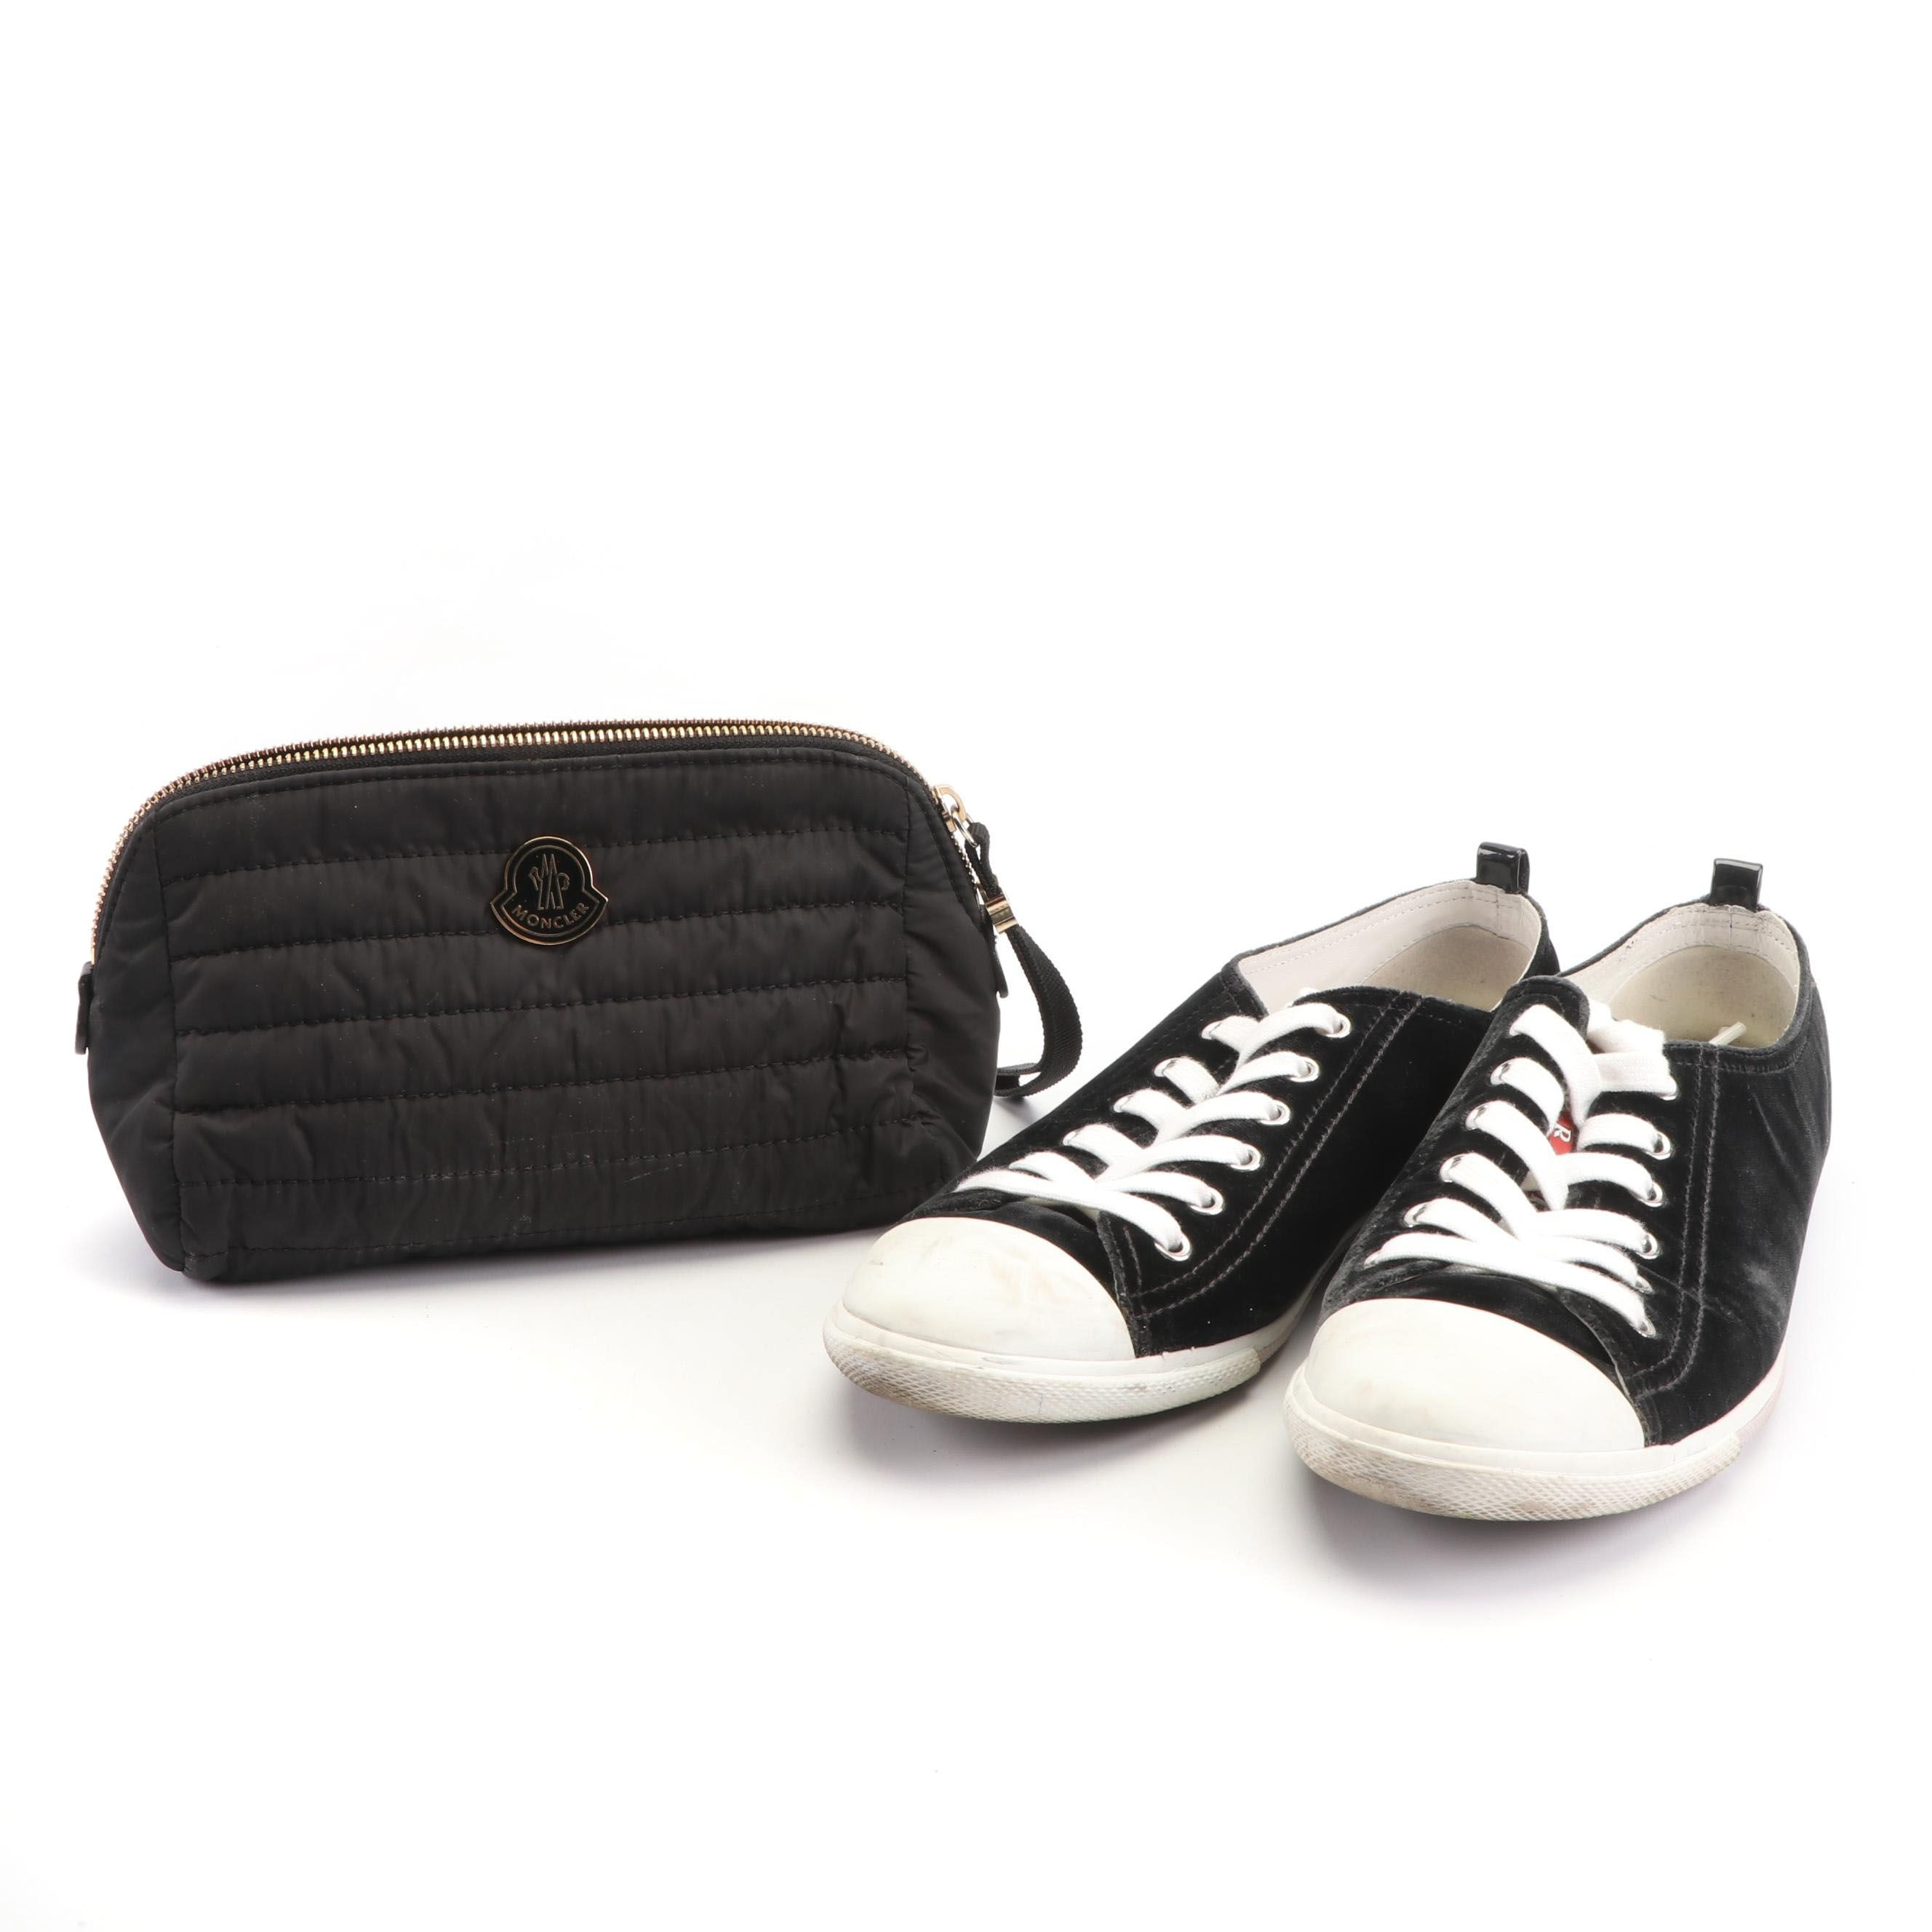 Women's Prada Velvet Grafite Sneakers with Moncler Modello Quilted Cosmetic Bag